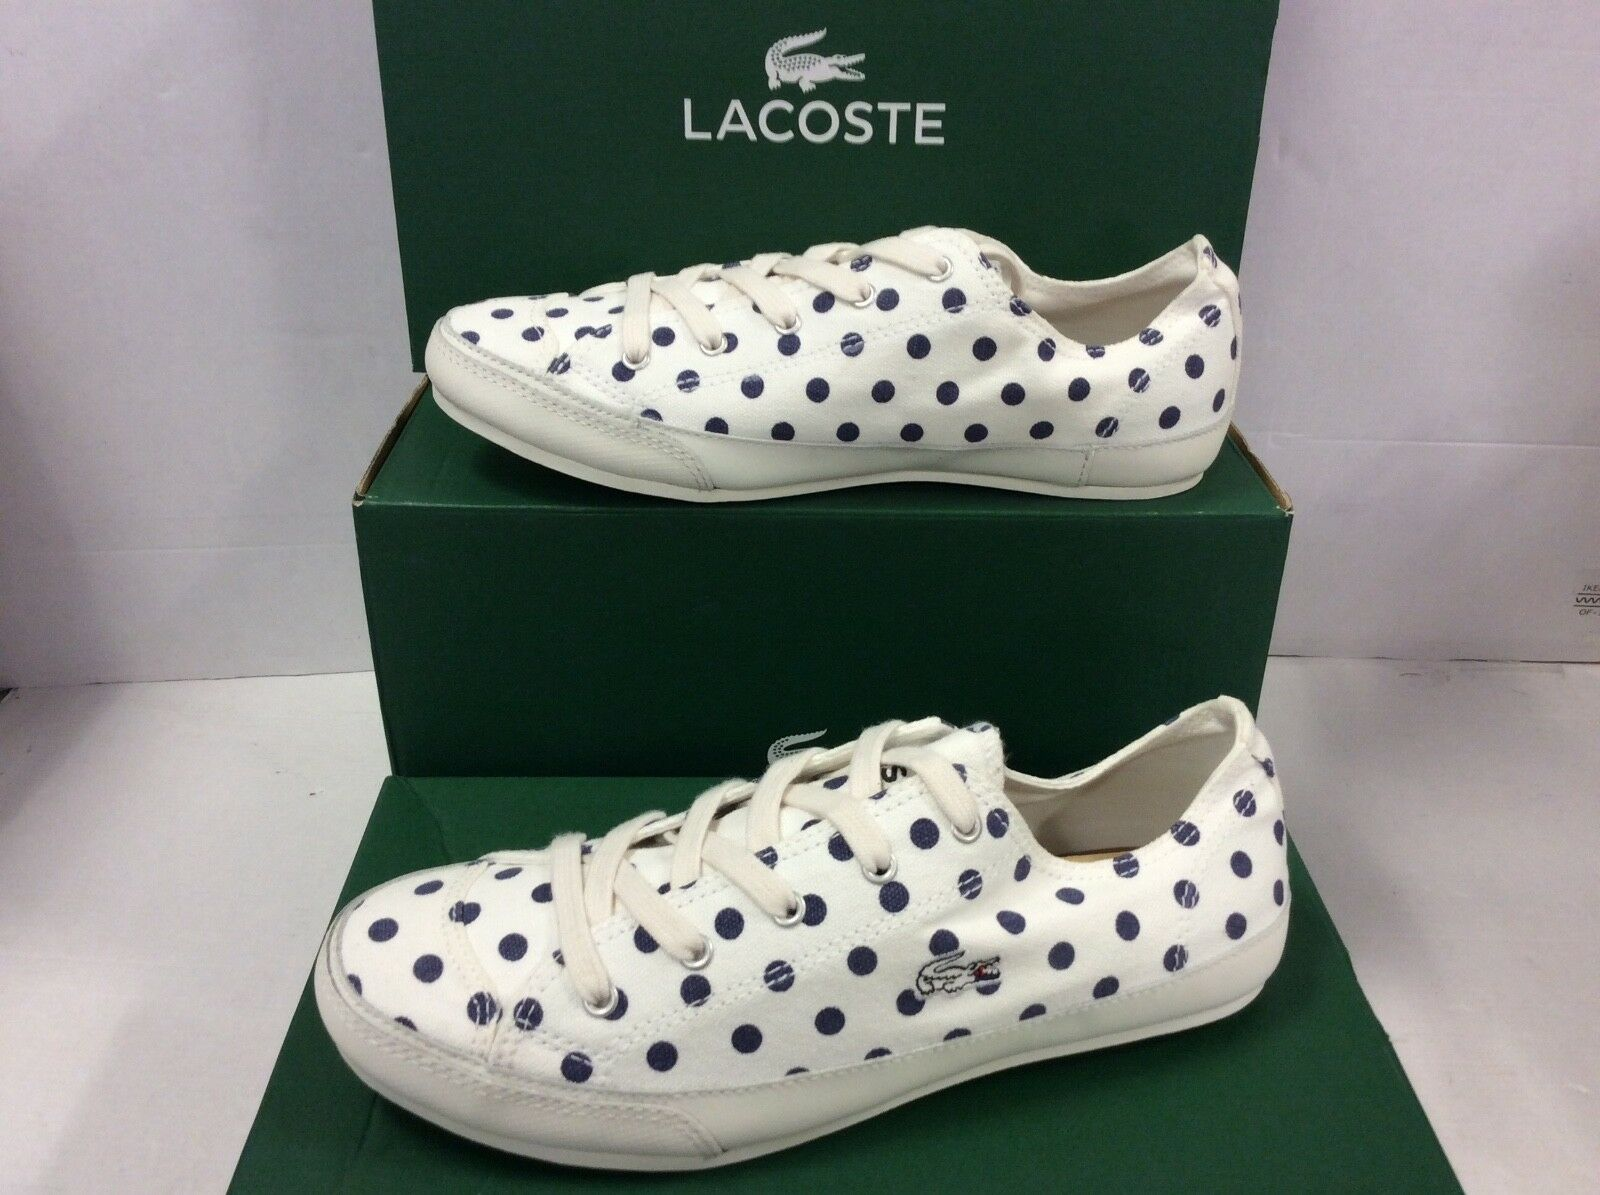 Lacoste Fairburn W10 Women's Sneakers Plimsolls Lace up Size